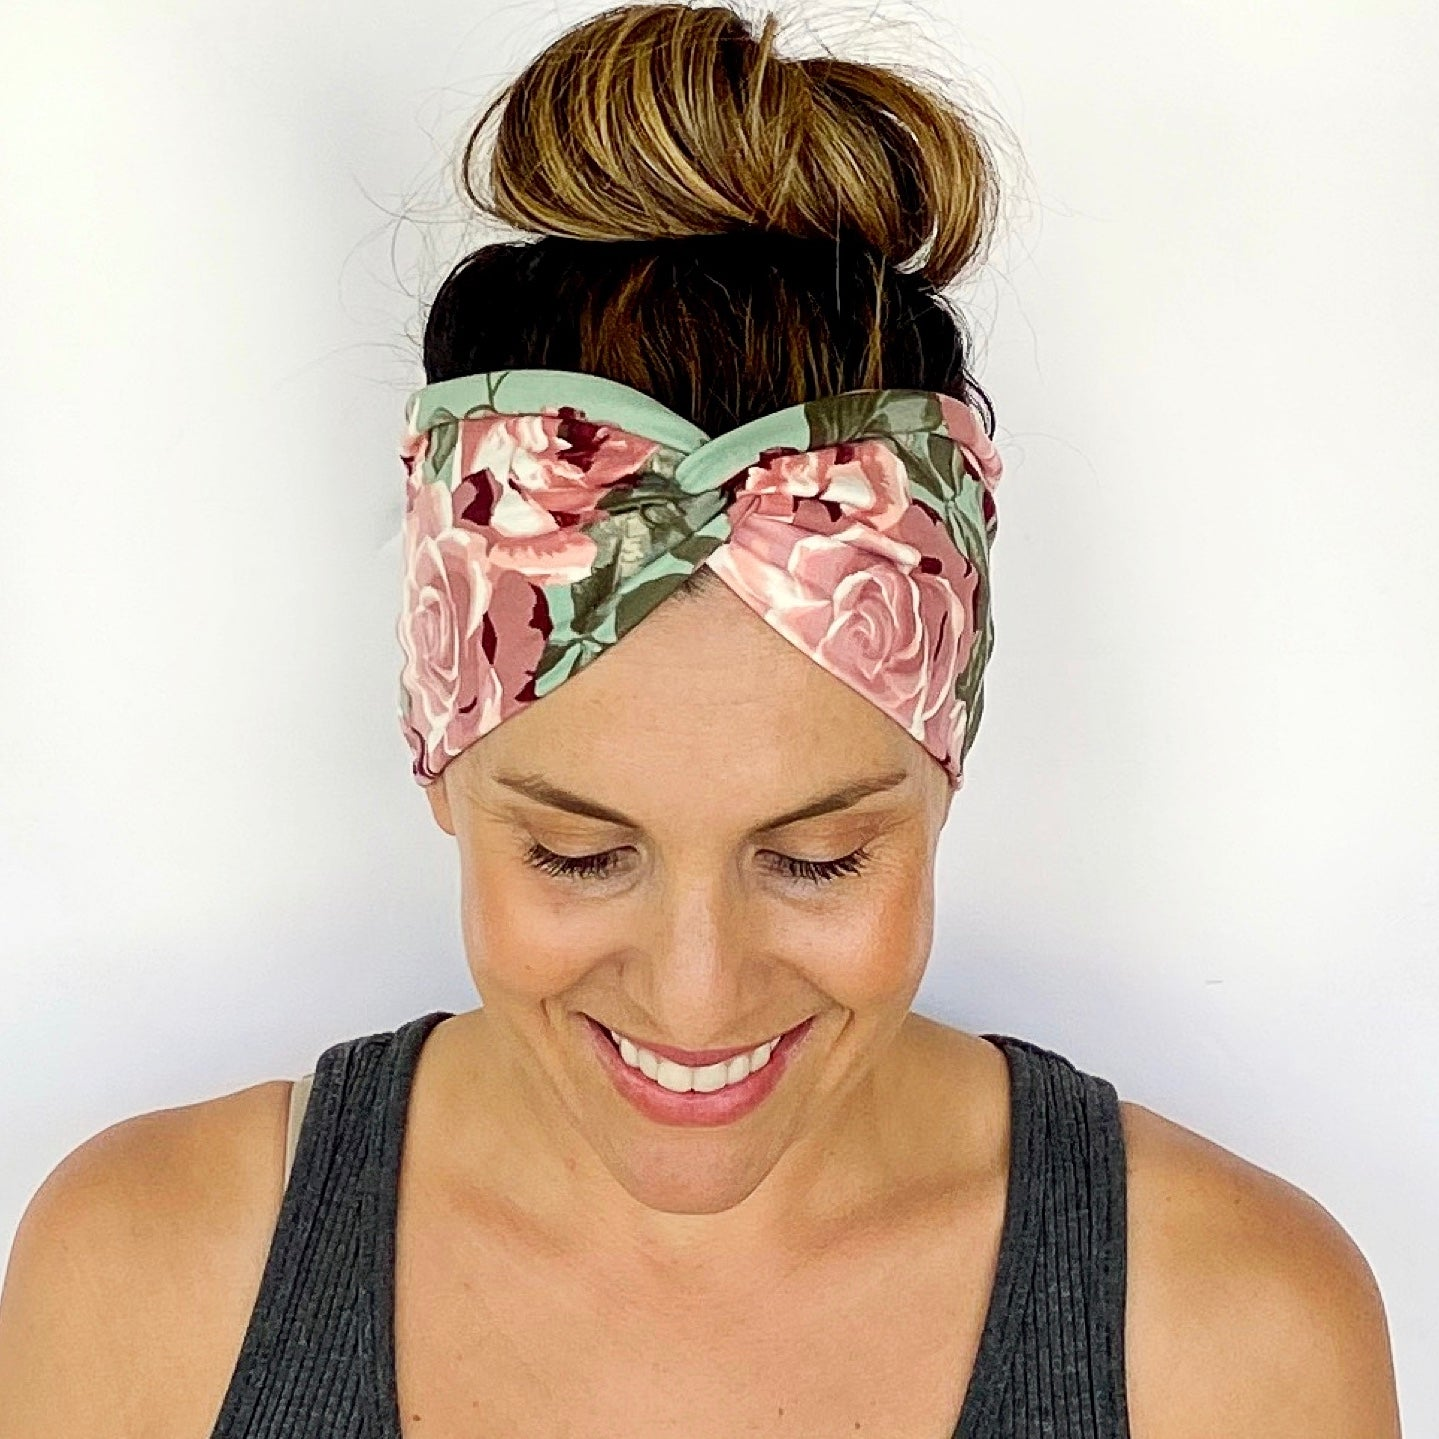 Emery Twisty Turban Headband